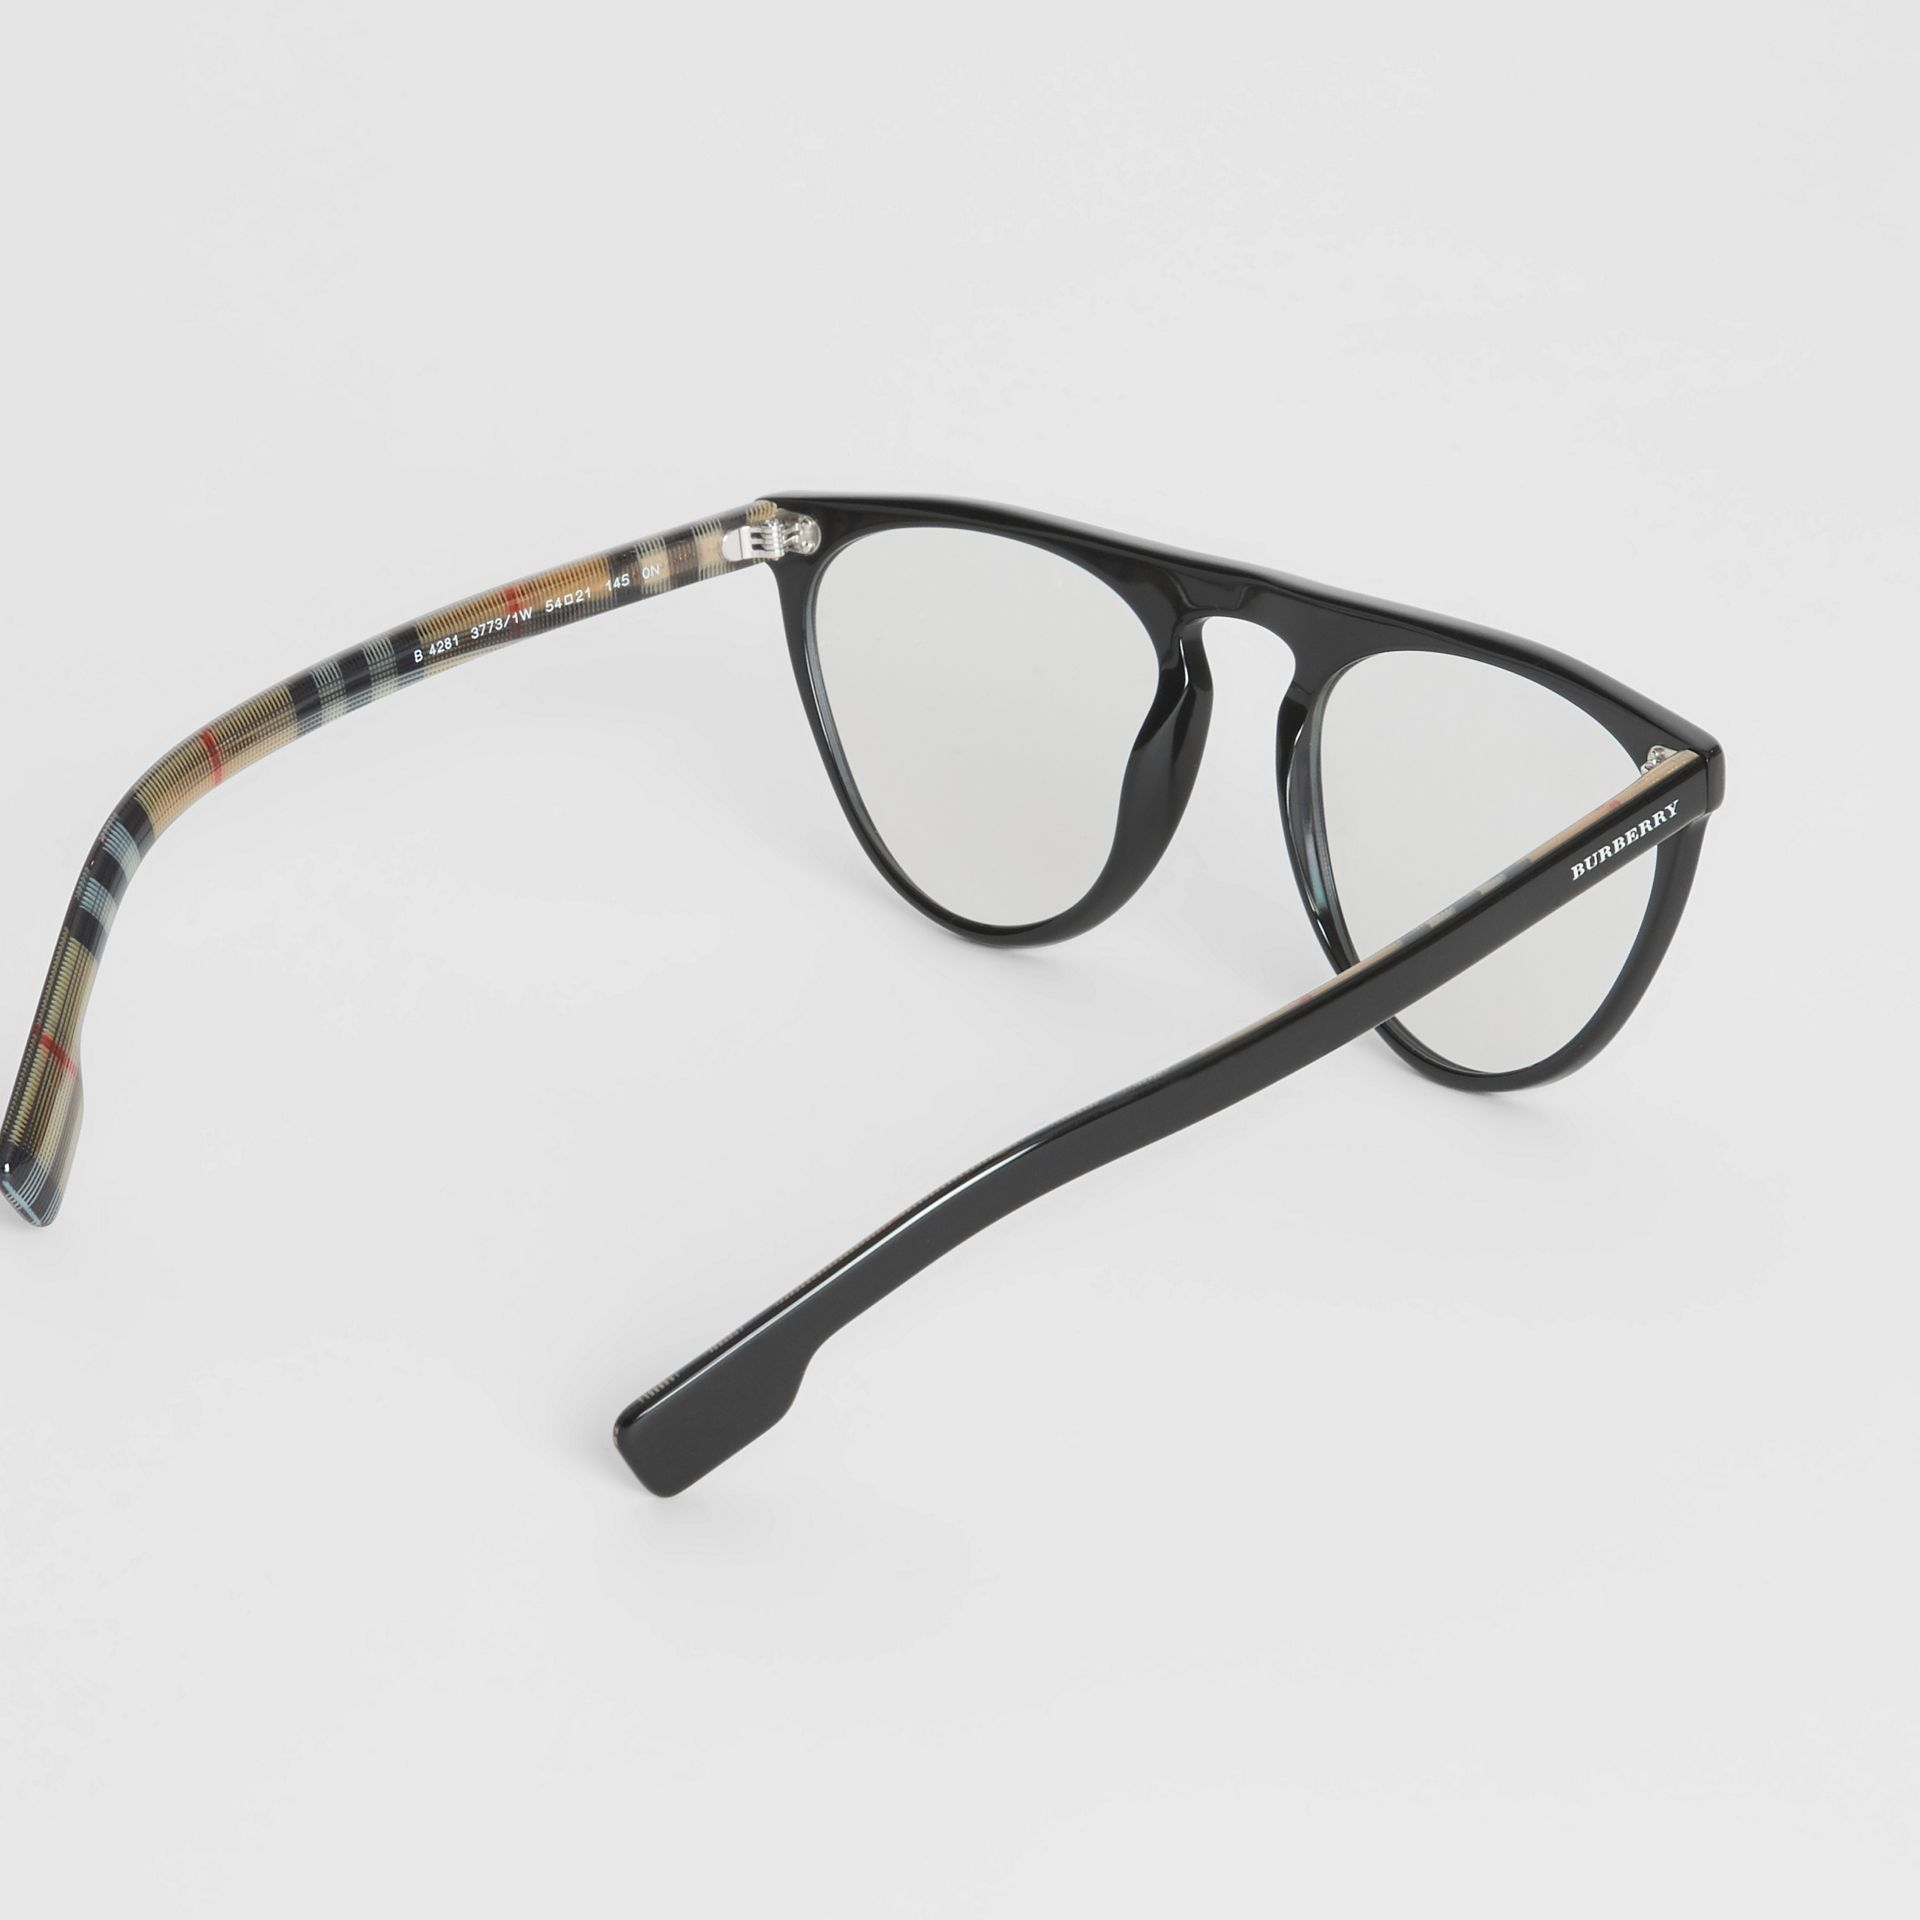 Keyhole D-shaped Optical Frames in Black - Men | Burberry Singapore - gallery image 4